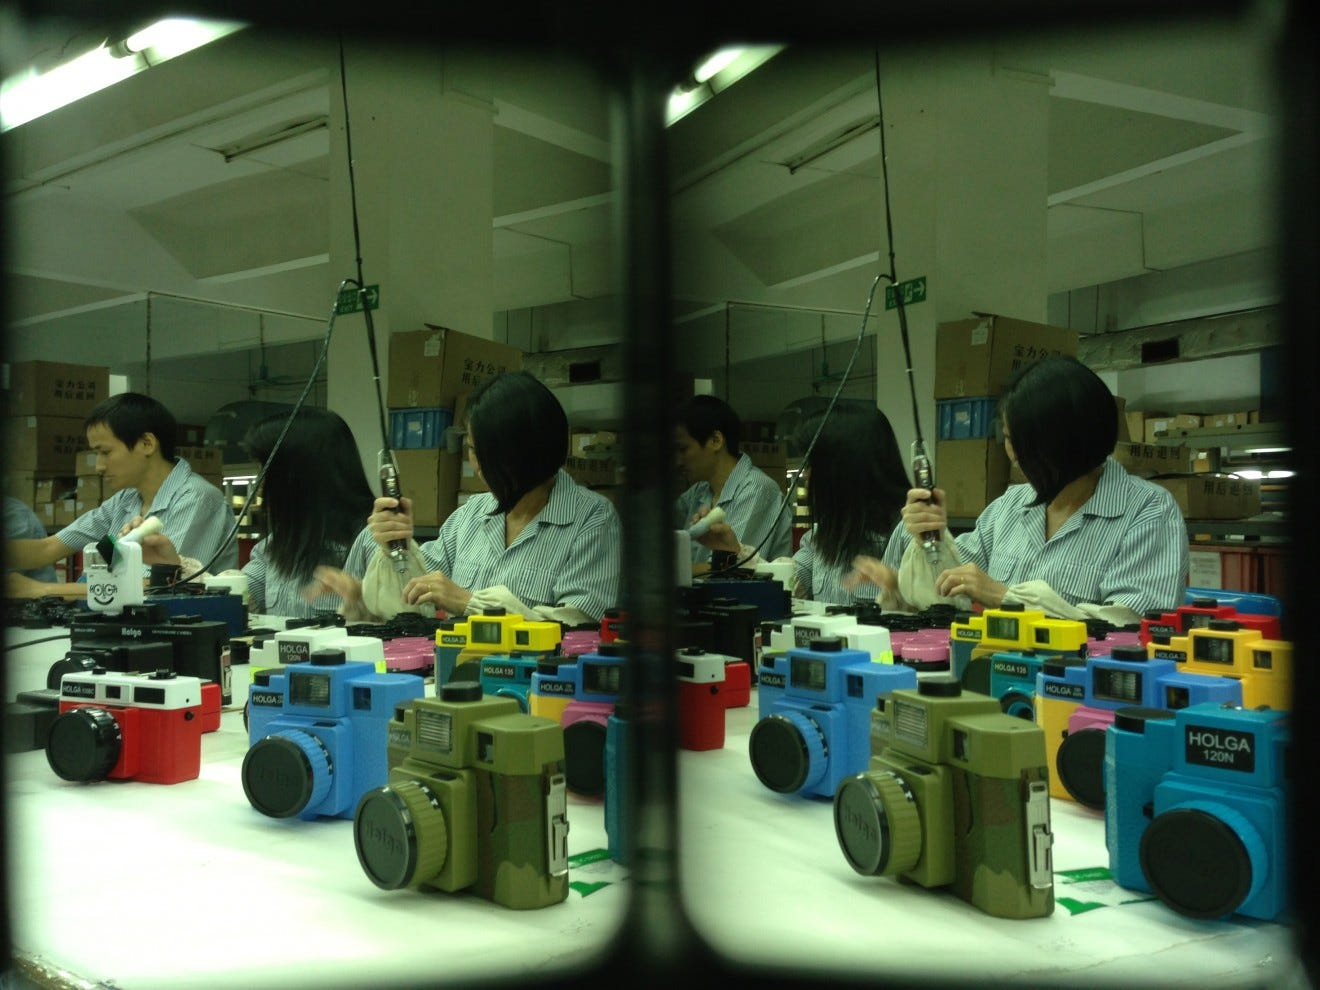 The now-closed Holga factory in Guangdong Province, China.